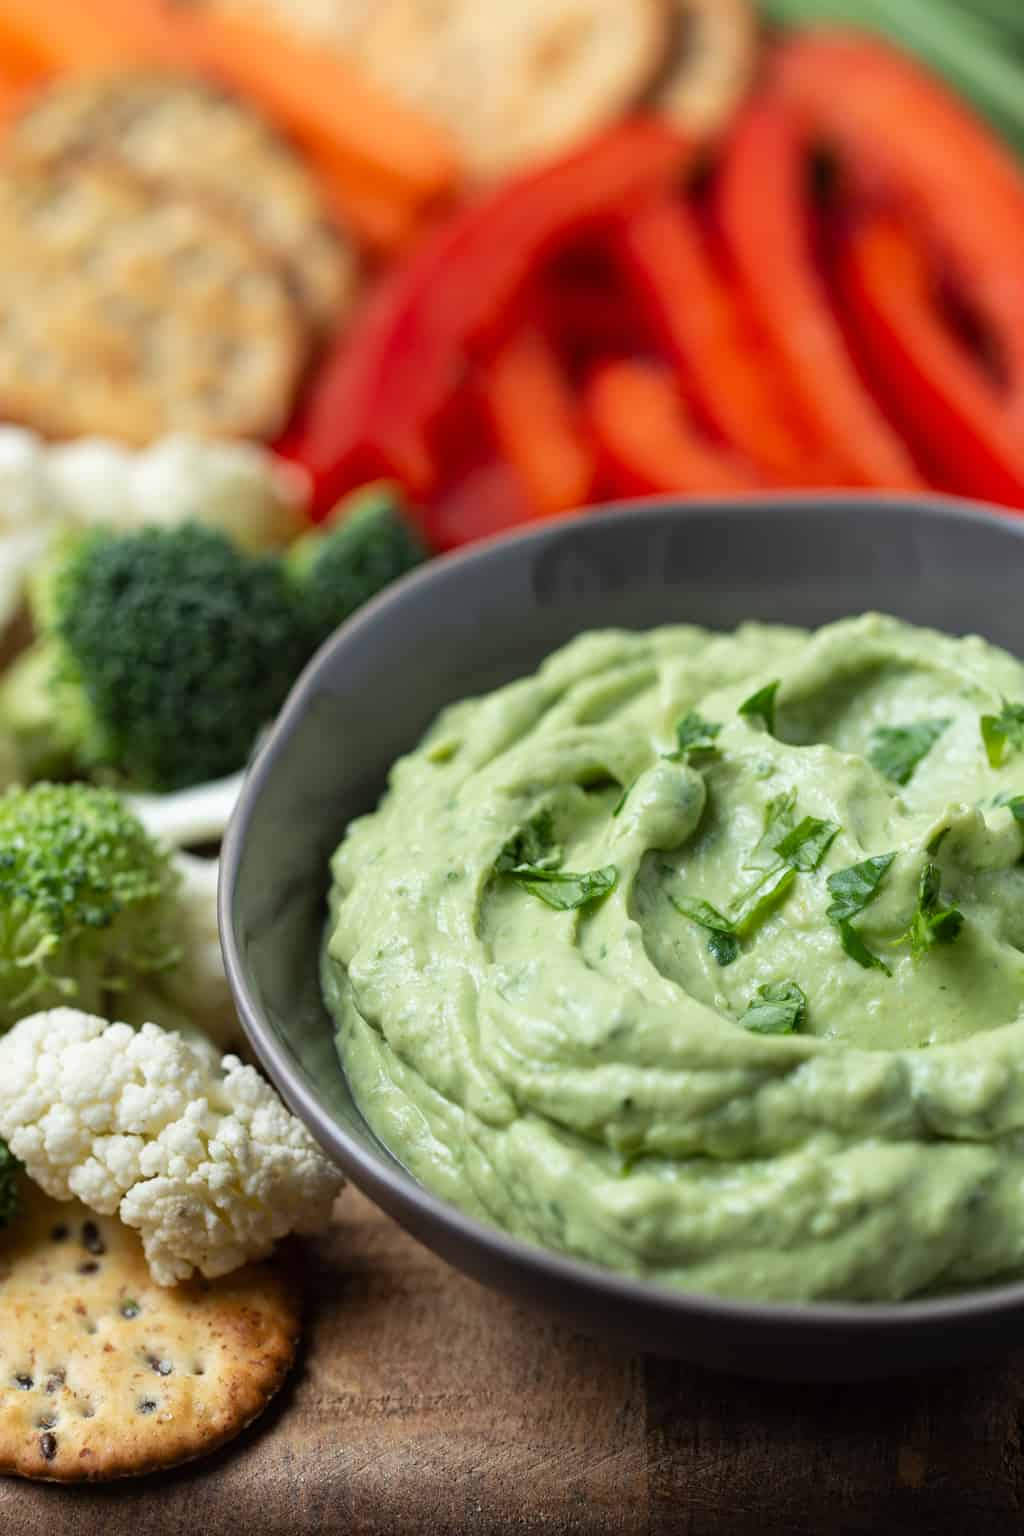 Gray bowl filled with Healthy Avocado Dip made with Greek Yogurt and surrounded by cut veggies for dipping.